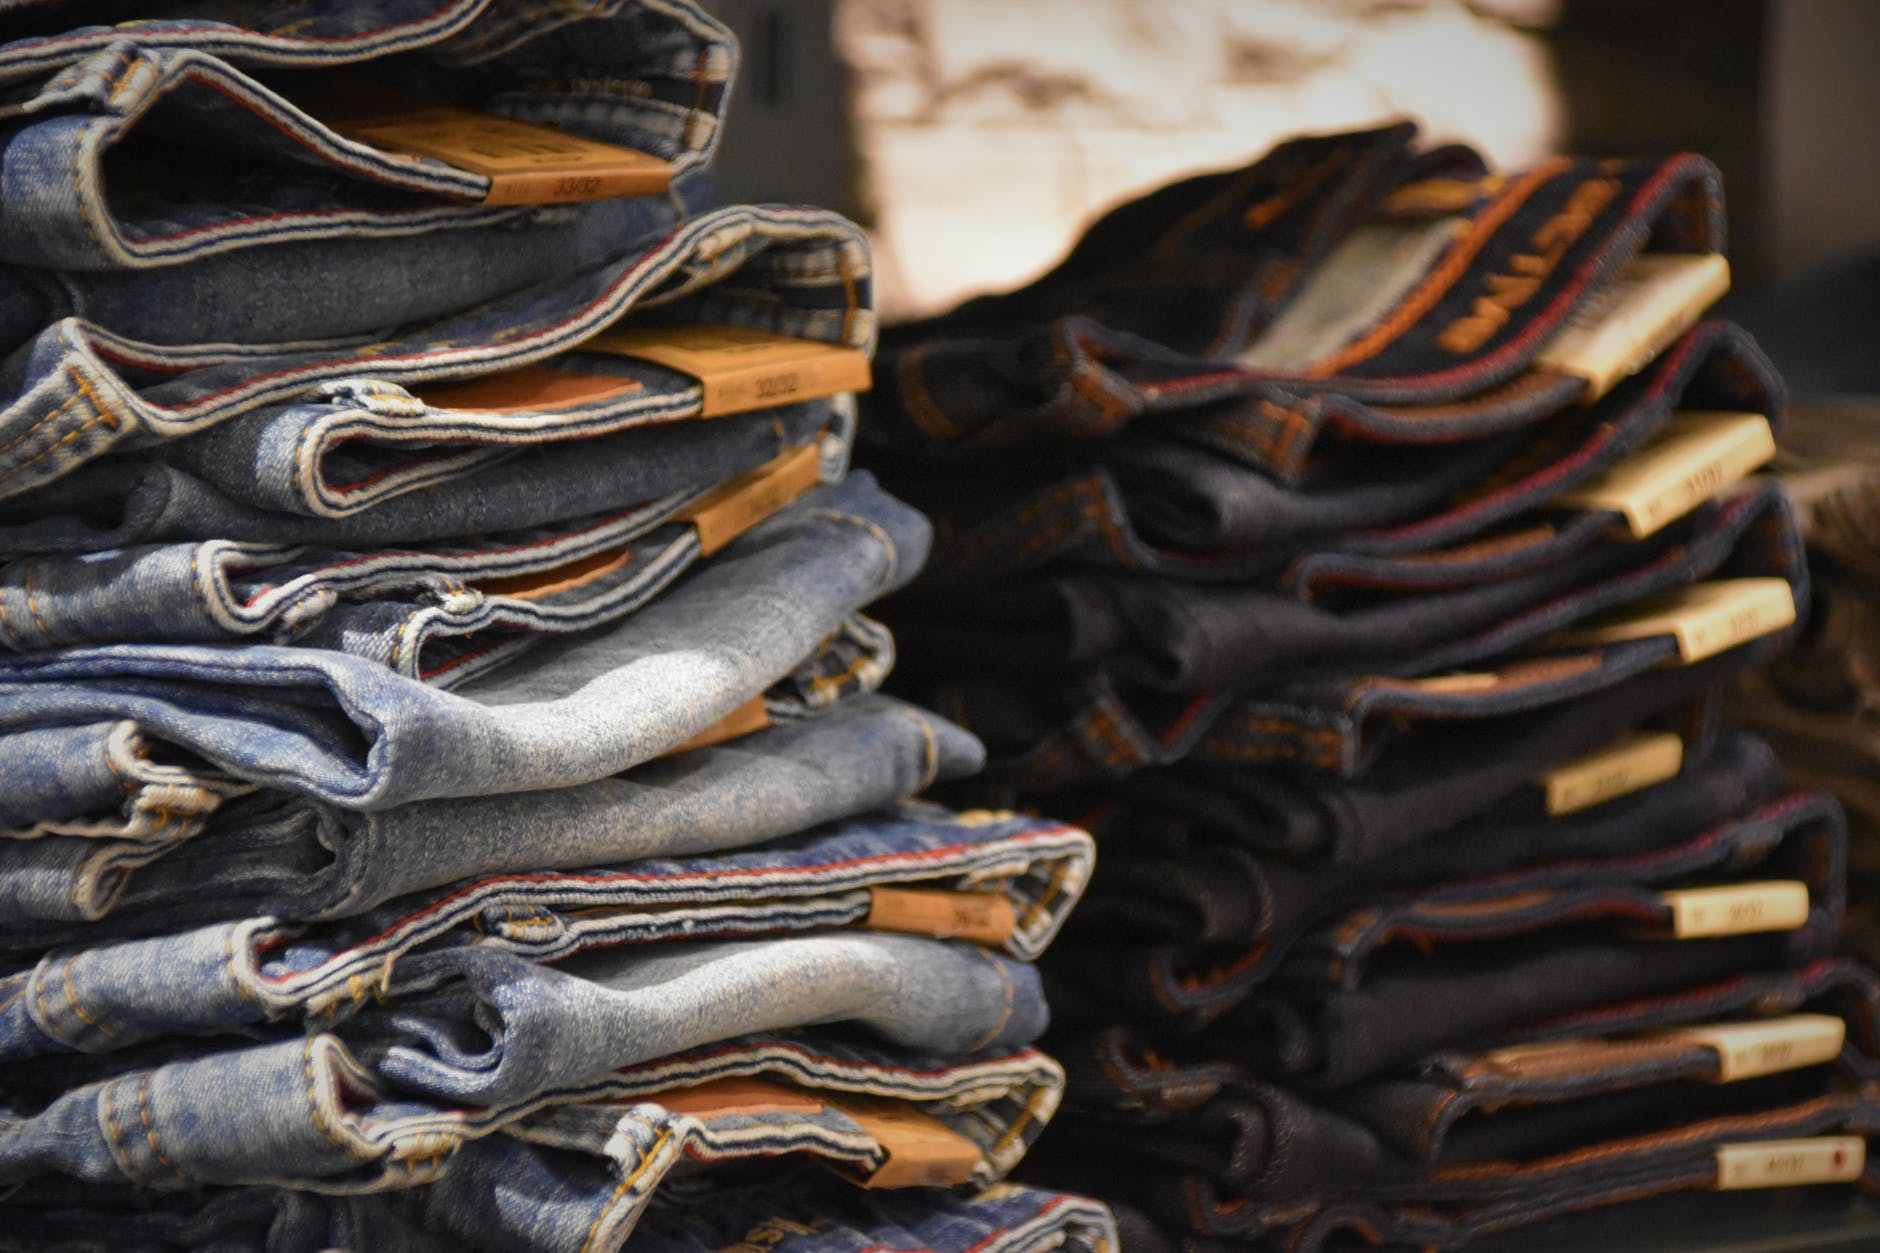 Types of Clothing Fabrics #9 Denim | Types Of Clothing Fabrics To Add to Your Repertoire